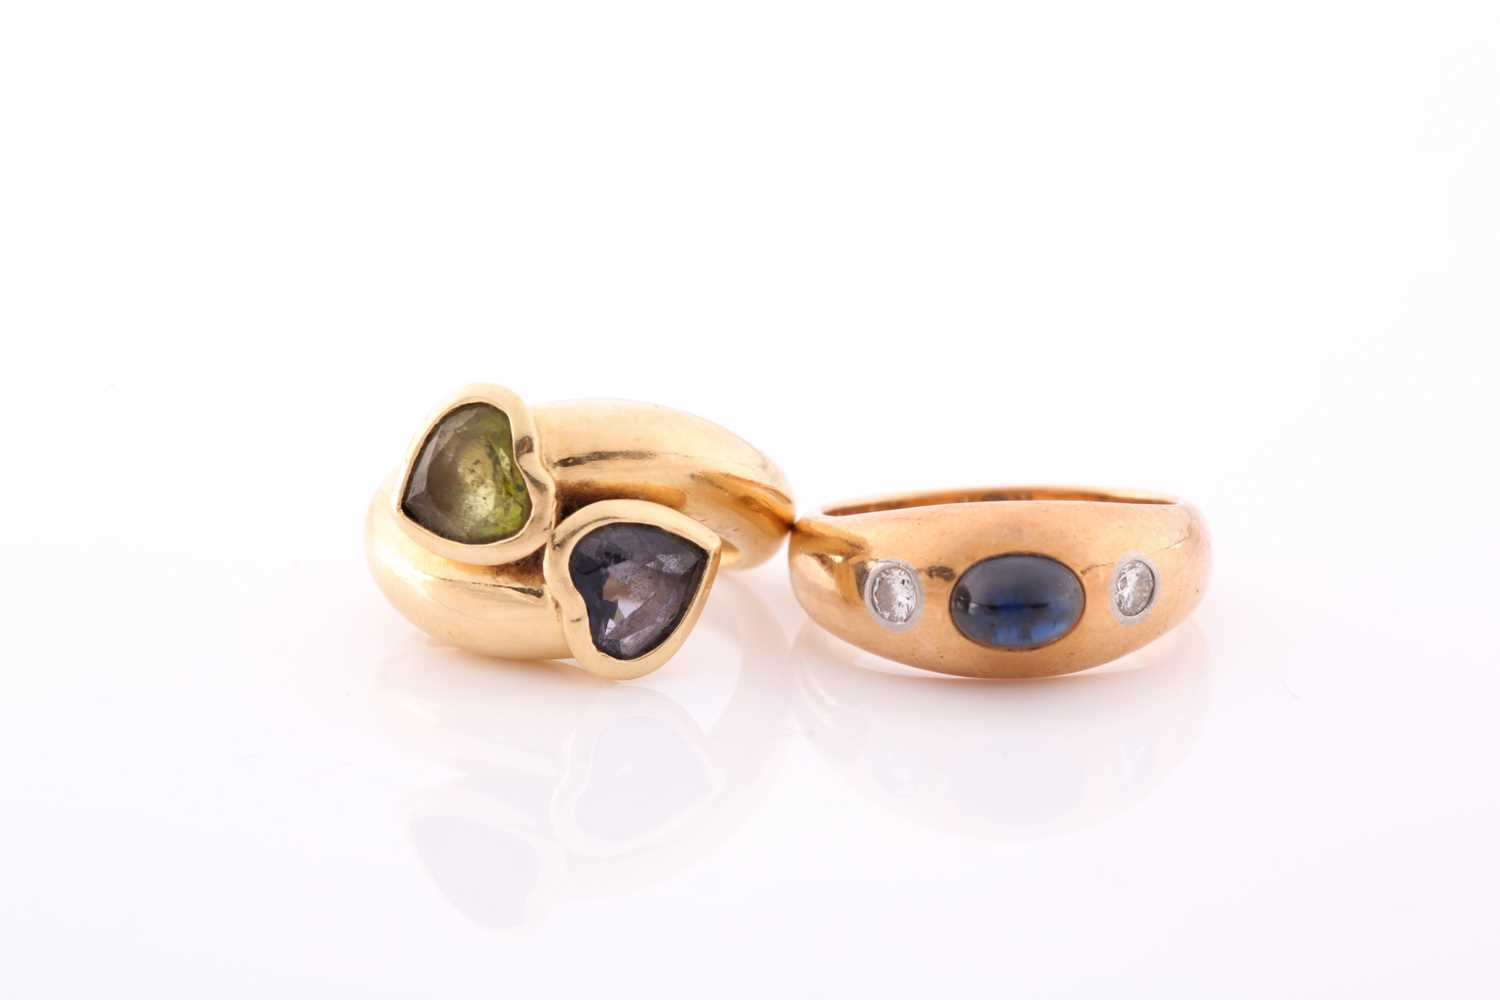 An 18ct yellow gold gypsy ring, set with a cabochon sapphire and two small diamonds, size M,